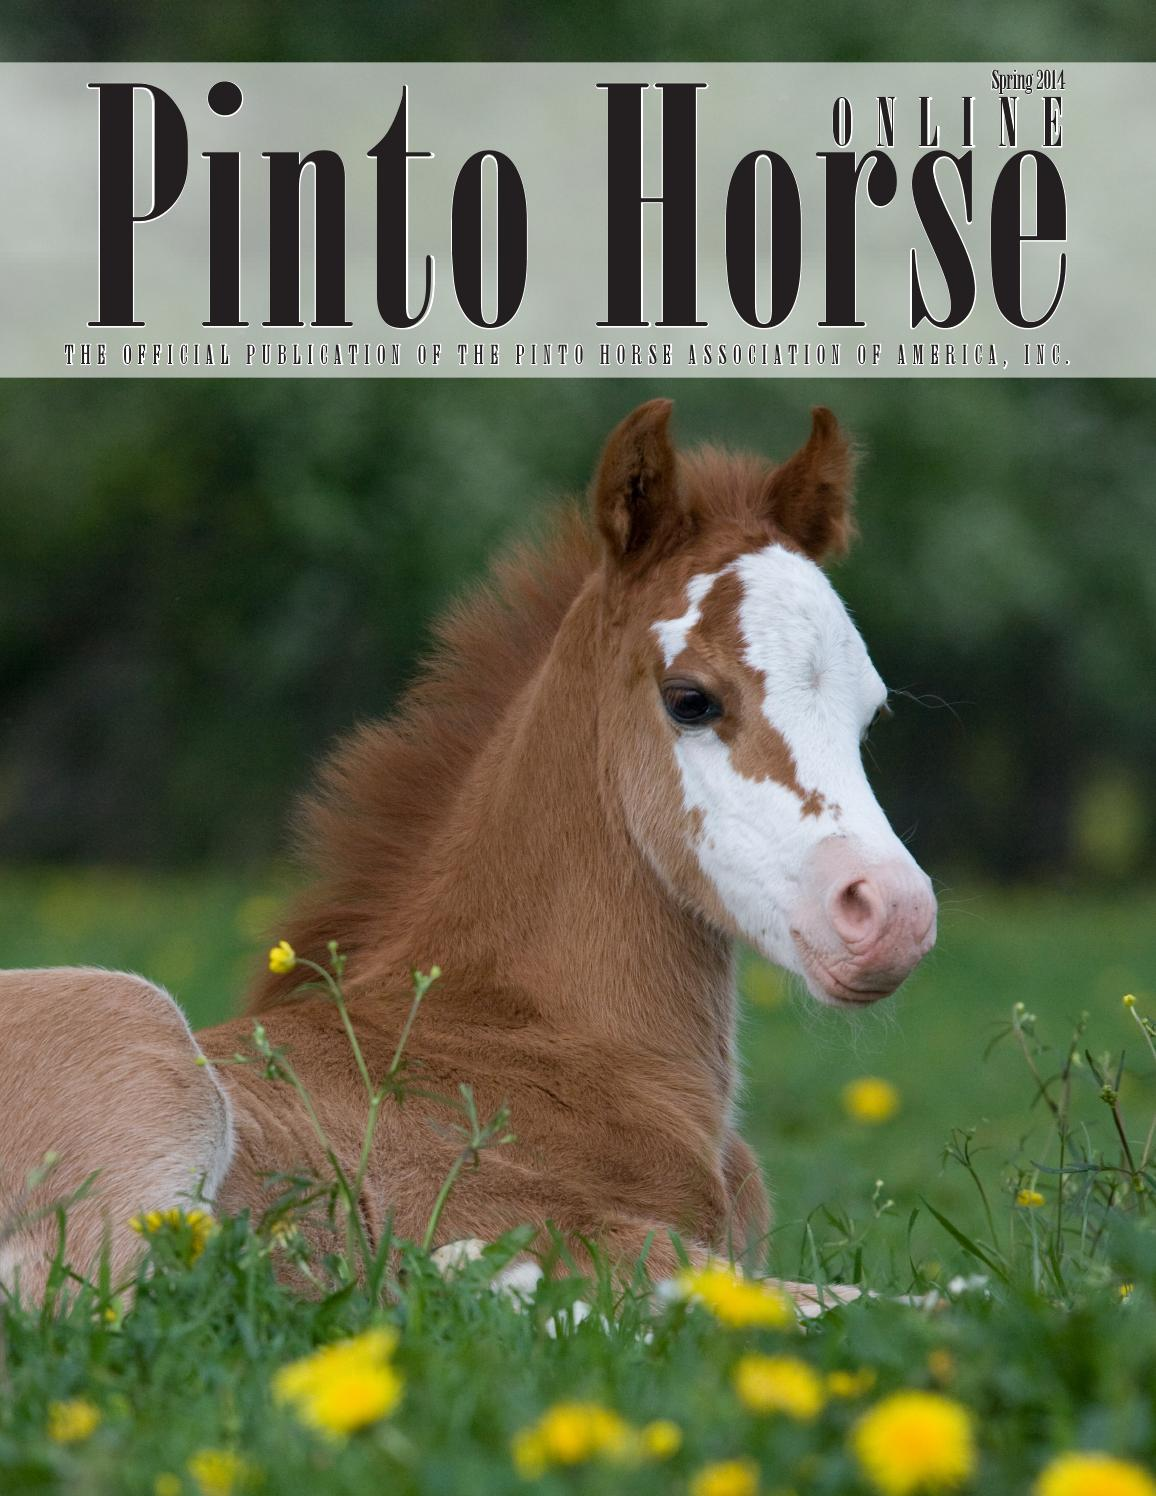 Pinto Horse Magazine - Spring 2014 by Pinto Horse Association of America, Inc. - issuu